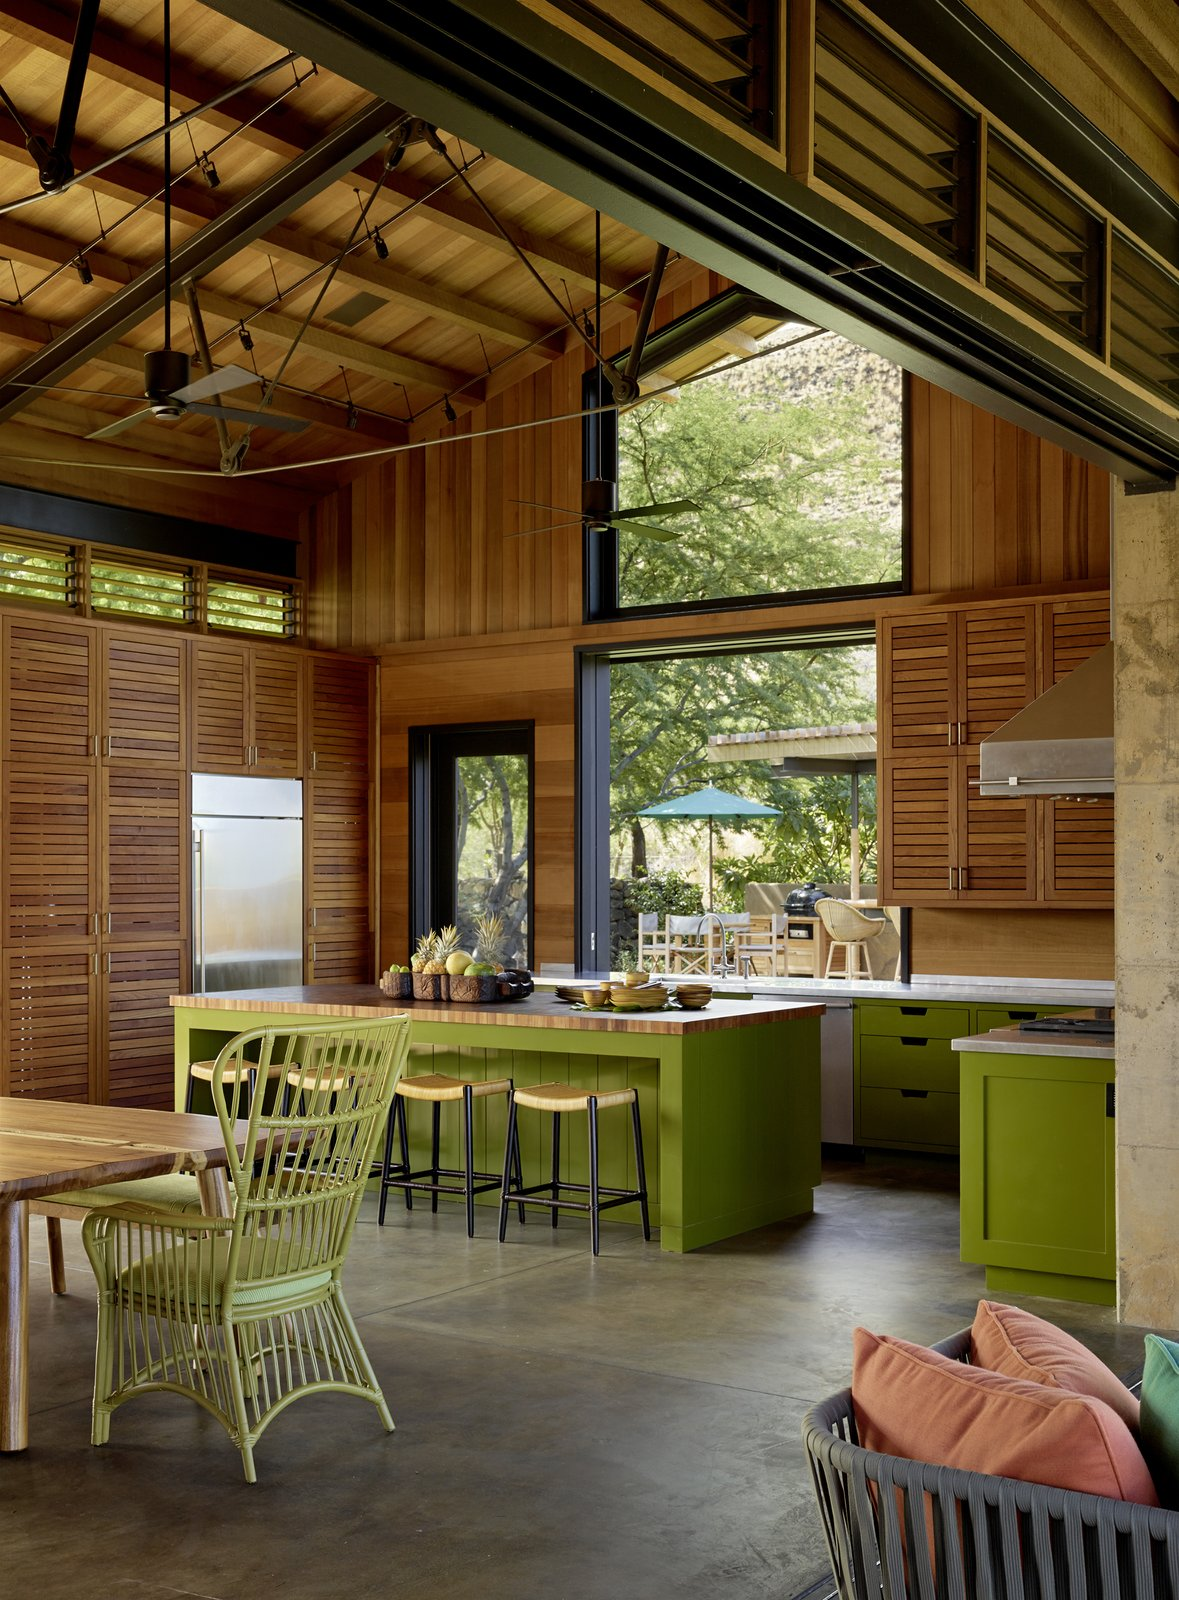 Kitchen, Marble Counter, Wood Counter, Wood Cabinet, Concrete Floor, Range Hood, Refrigerator, Wood Backsplashe, and Track Lighting  Photo 7 of 20 in An Incredible Home in Hawaii That's As Much Fun As Summer Camp